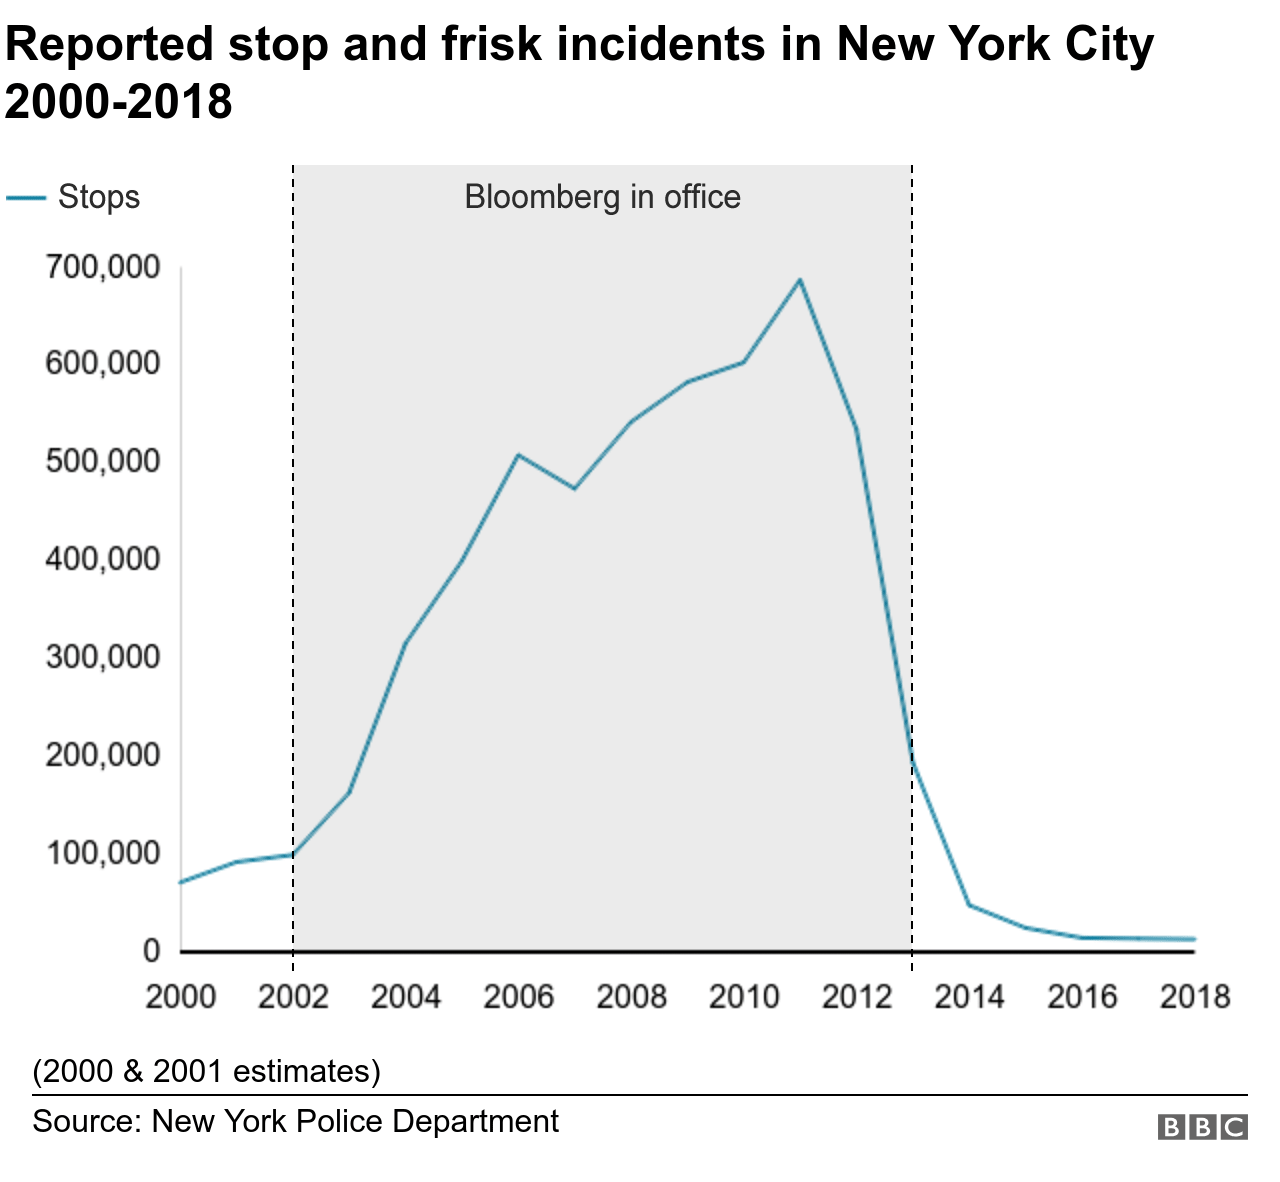 Stop and frisk numbers in New York City 2000-2018